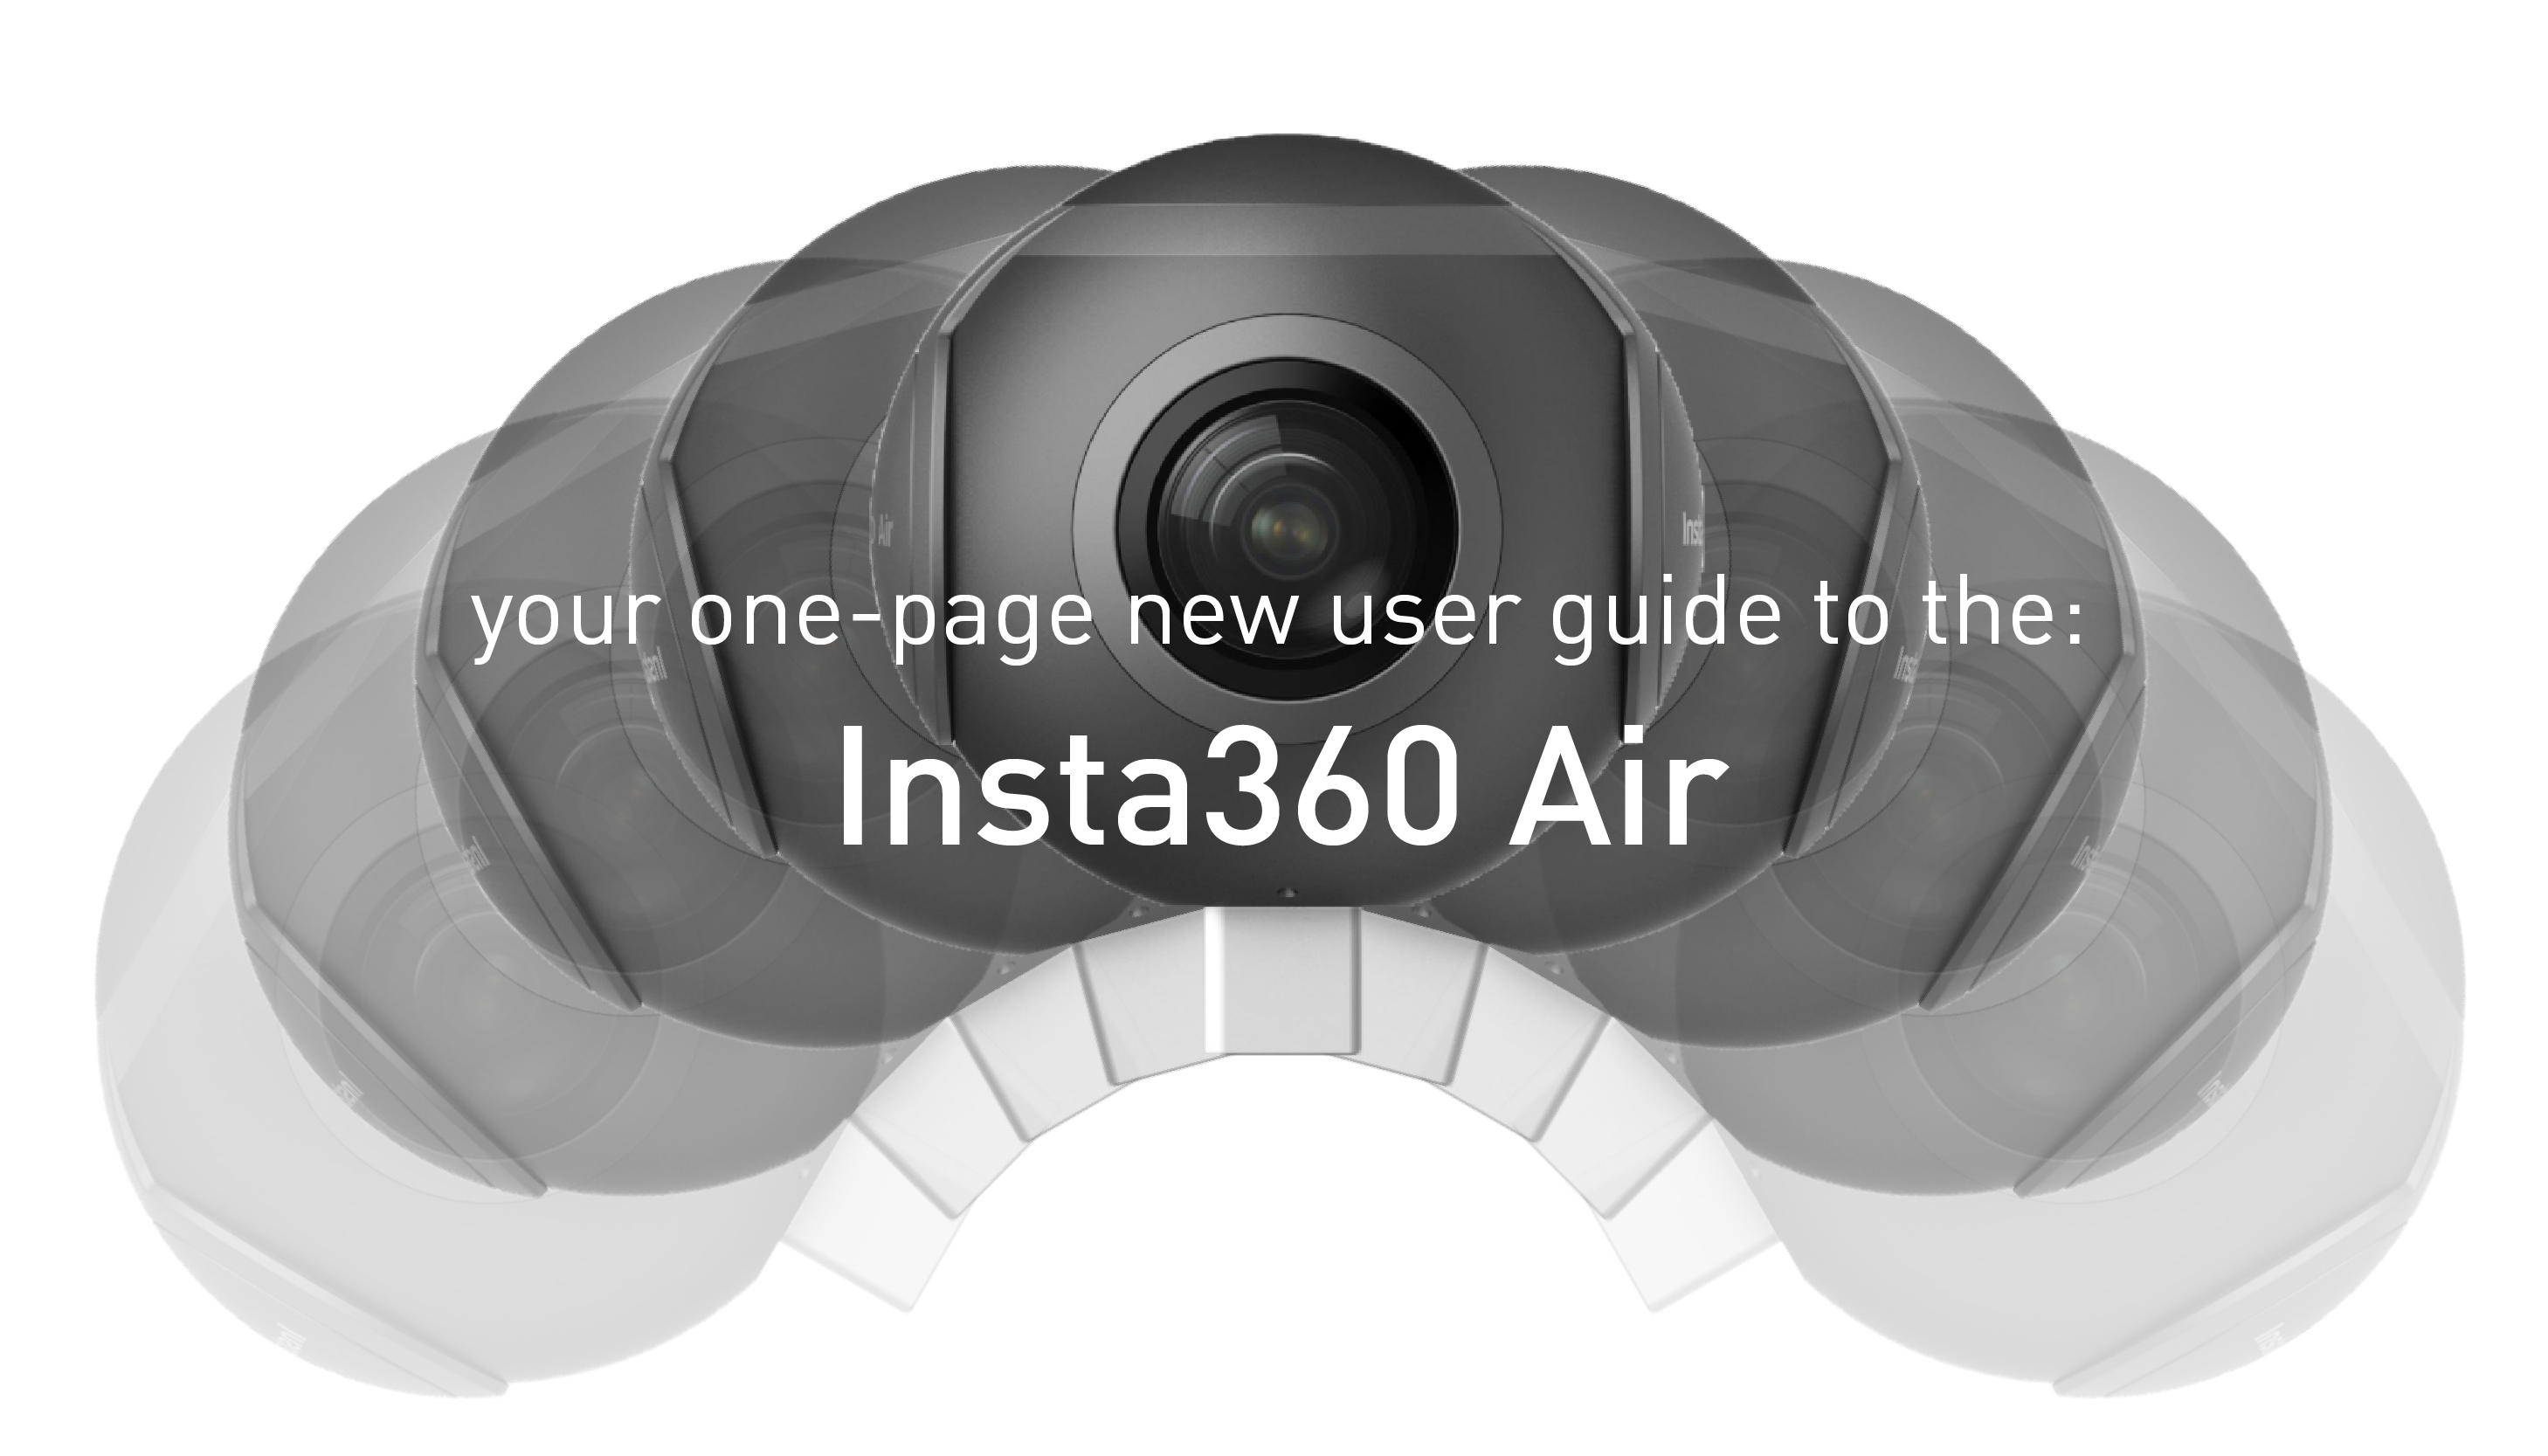 Your One-Page Guide to the Insta360 Air - Immersive Shooter